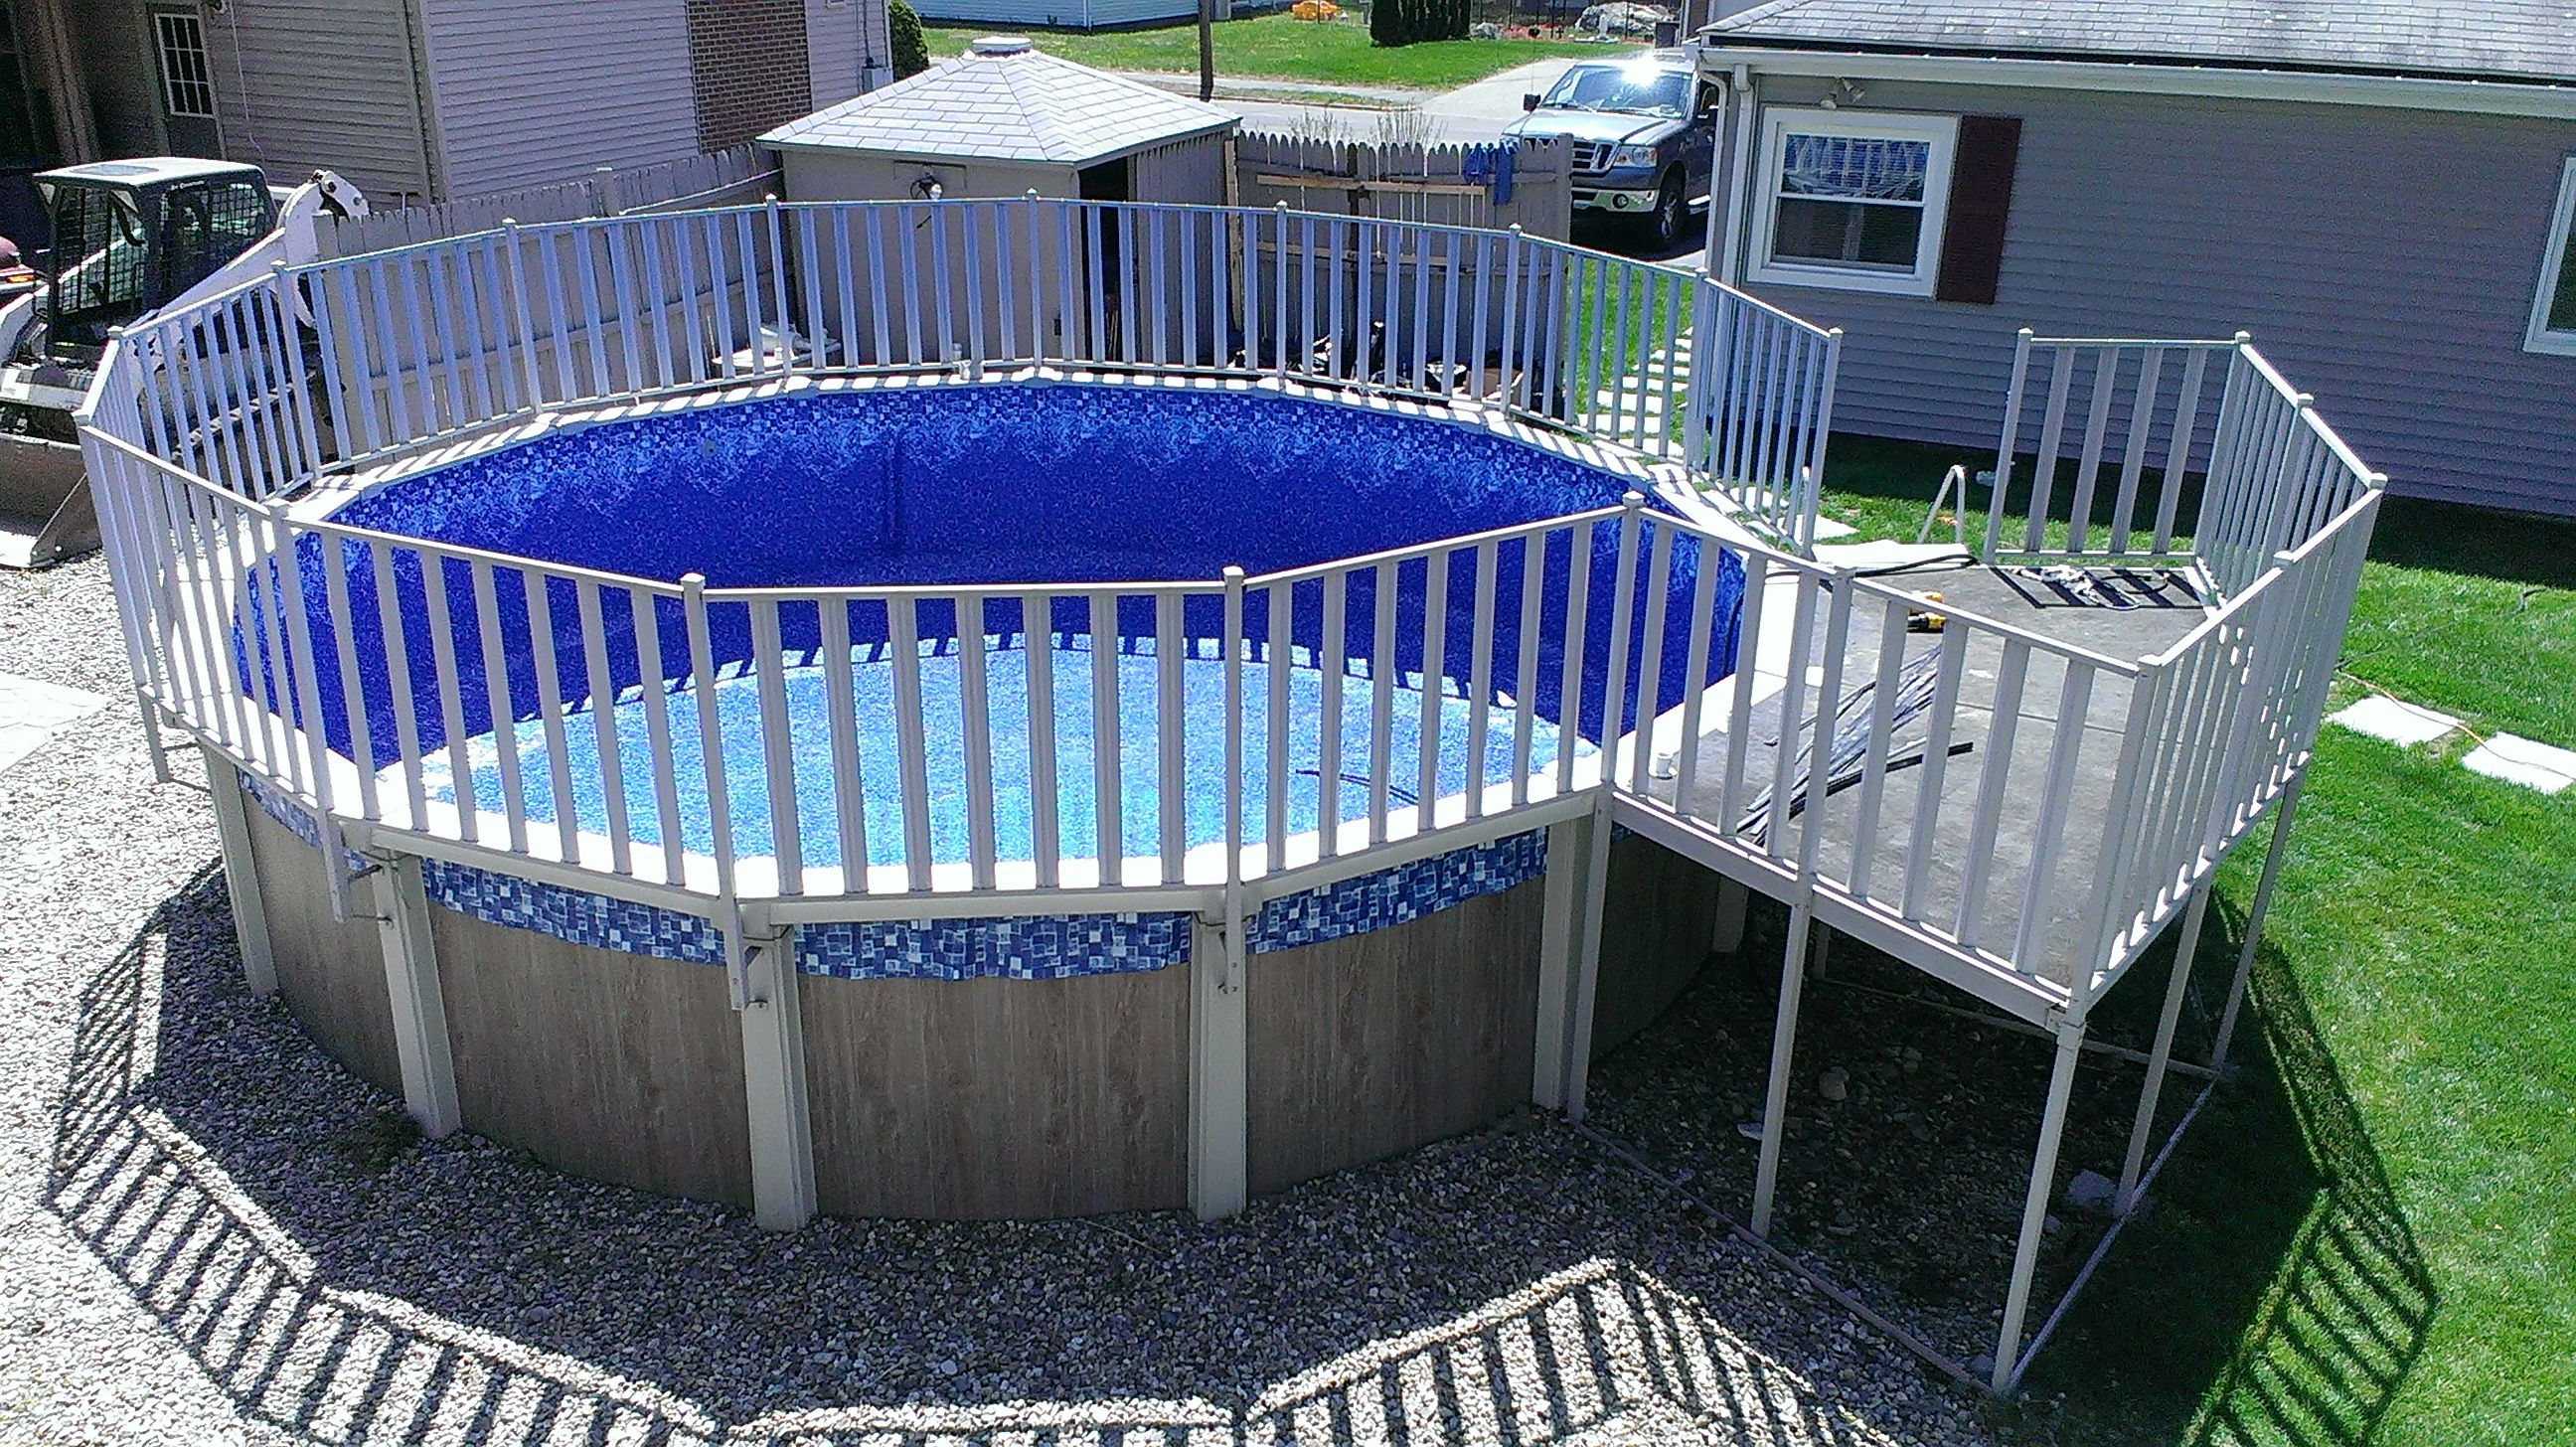 The Best Way To Make An Old Pool Look Nice Is To Replace